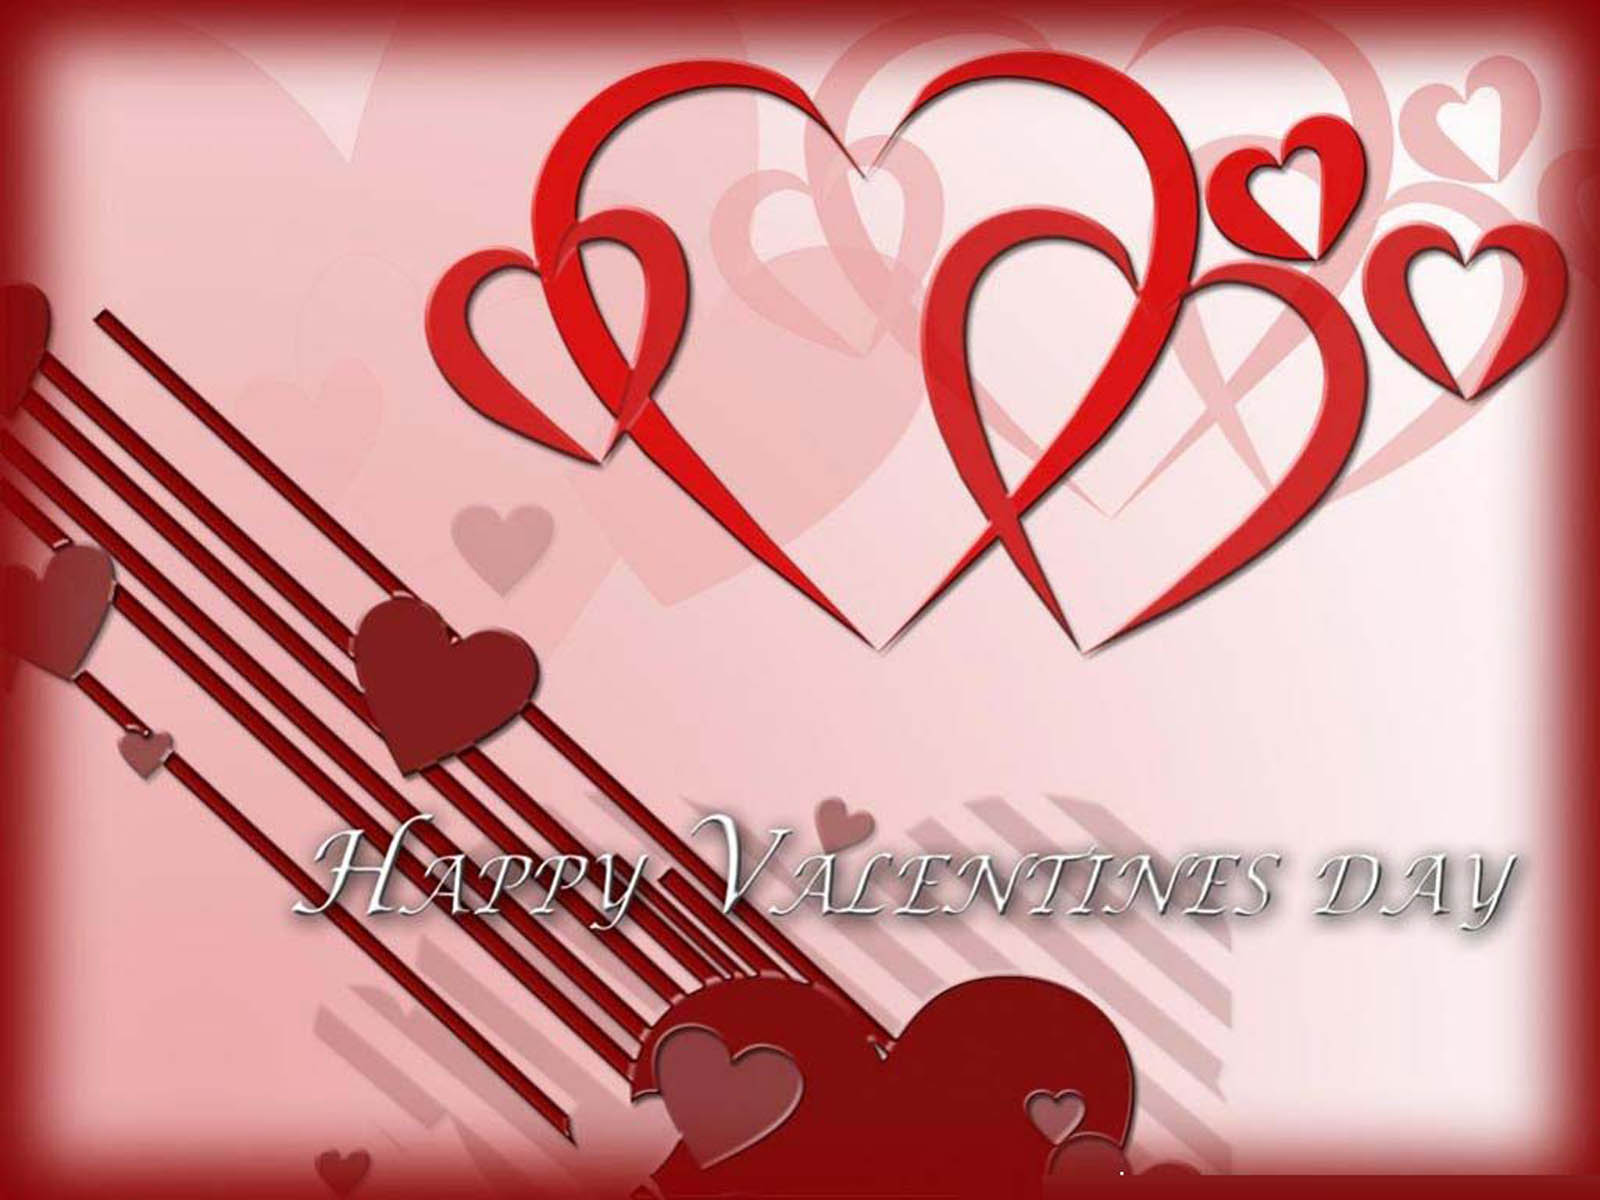 Wallpapers Valentines Day Backgrounds Valentines Day Desktop 1600x1200